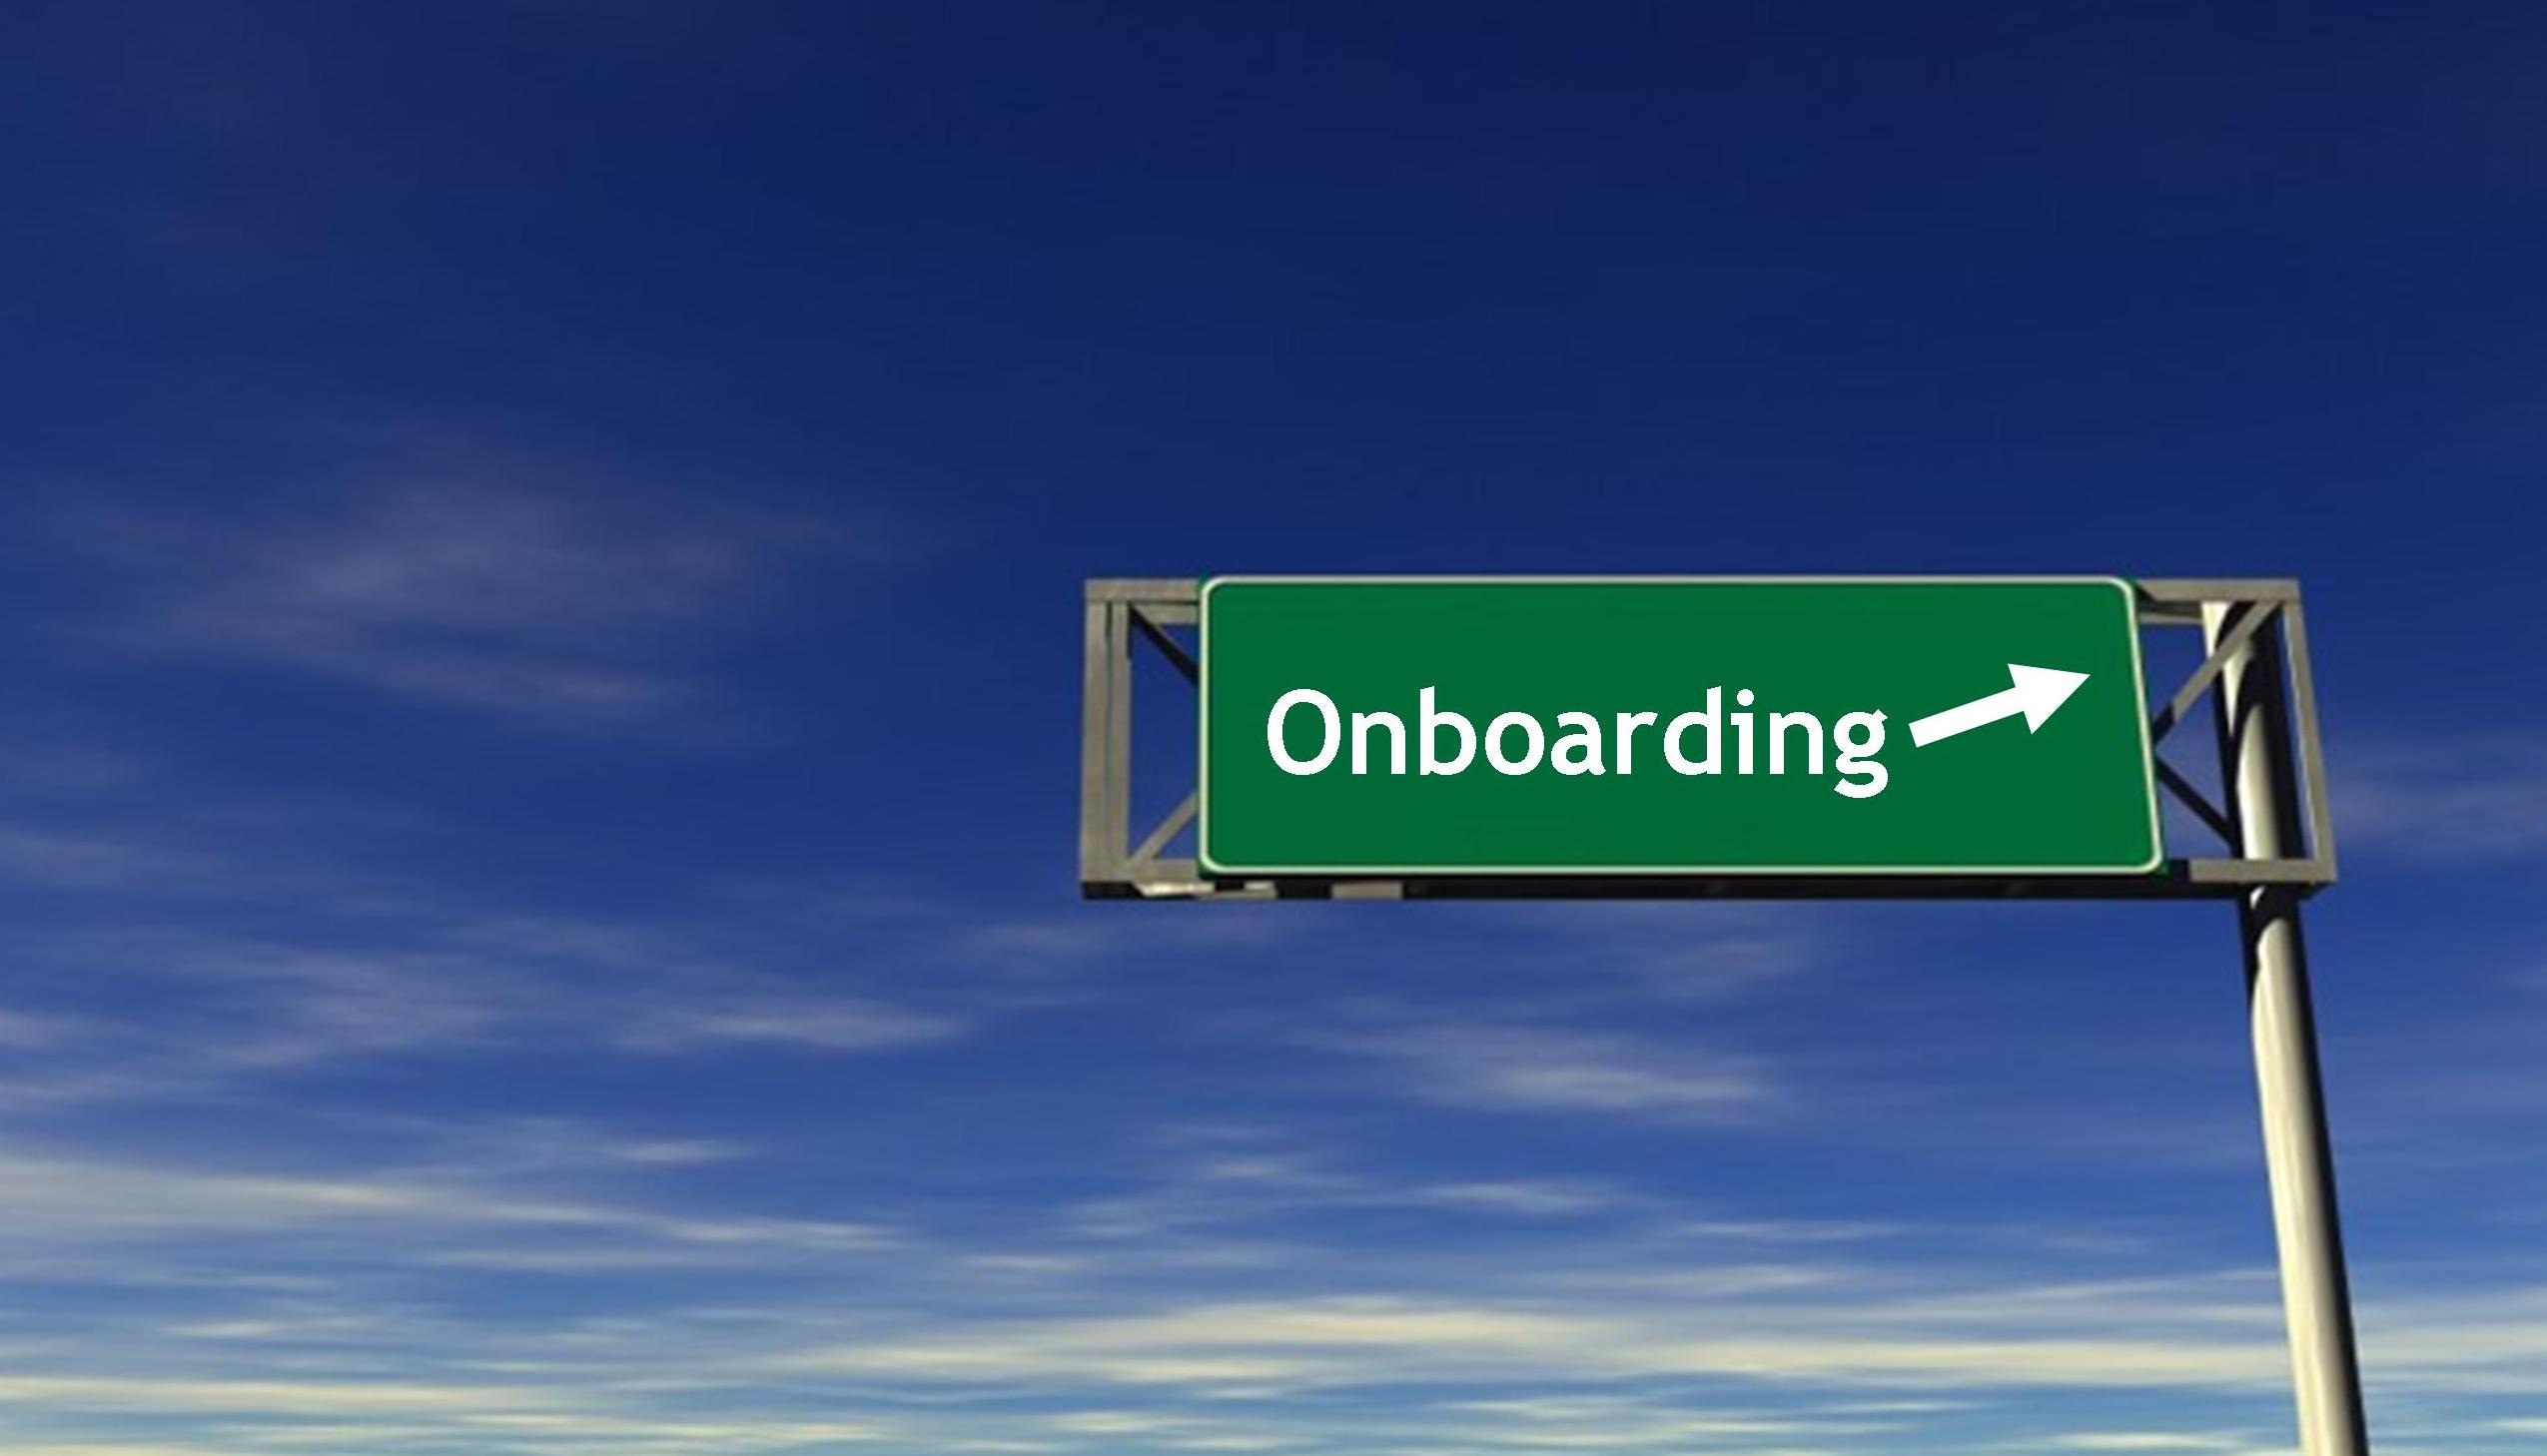 Six Tips for Accelerating Sales Onboarding